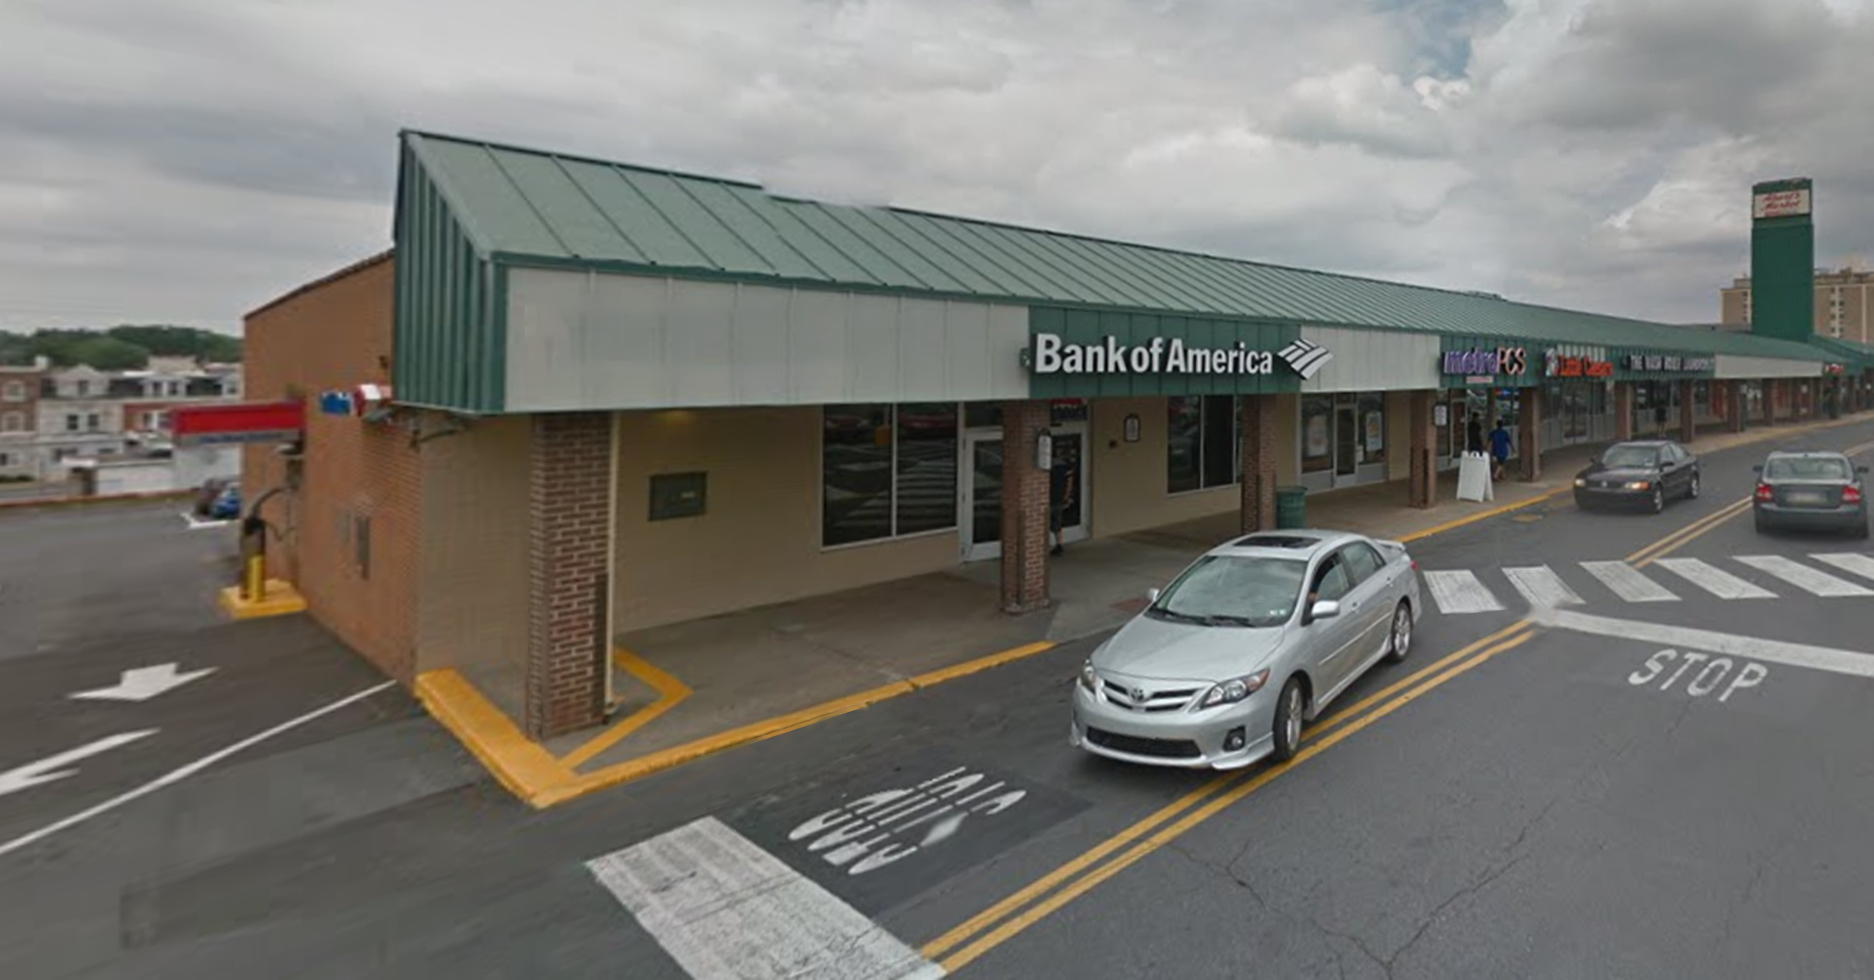 Bank of America financial center with walk-up ATM | 1443 W Allen St, Allentown, PA 18102